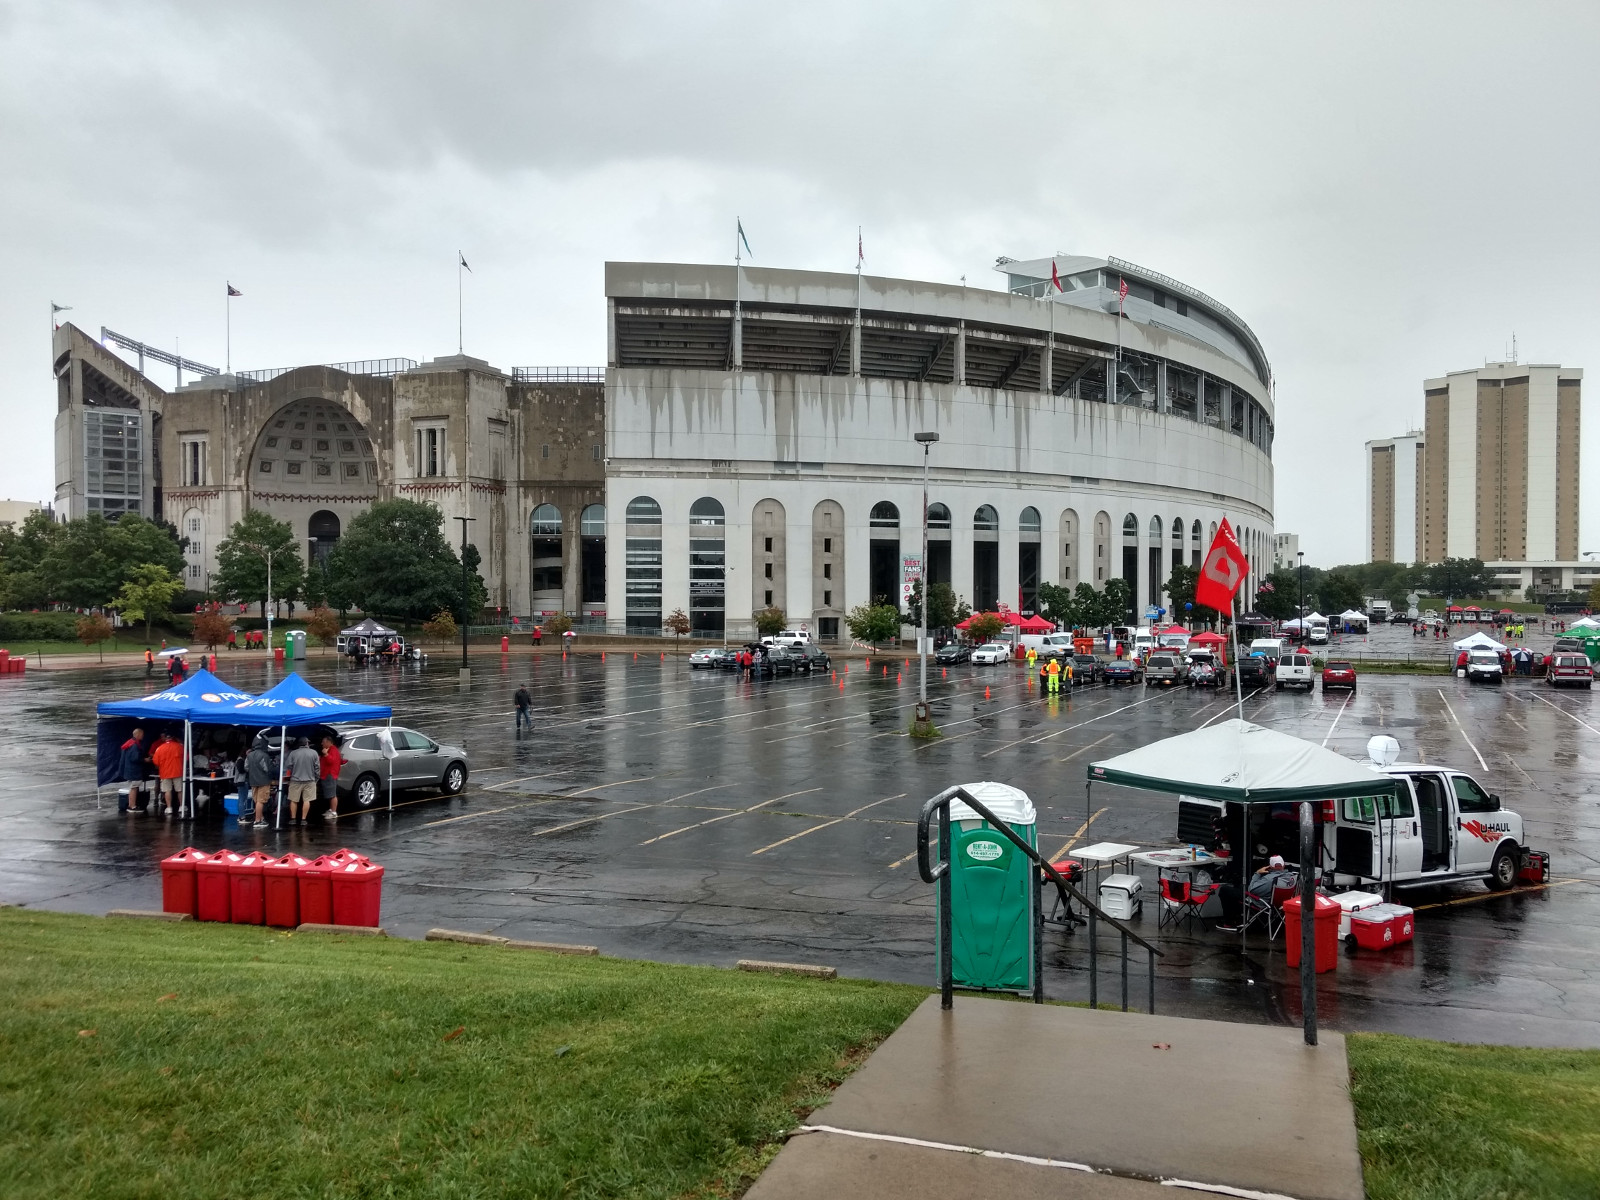 The Ohio stadium in Columbus